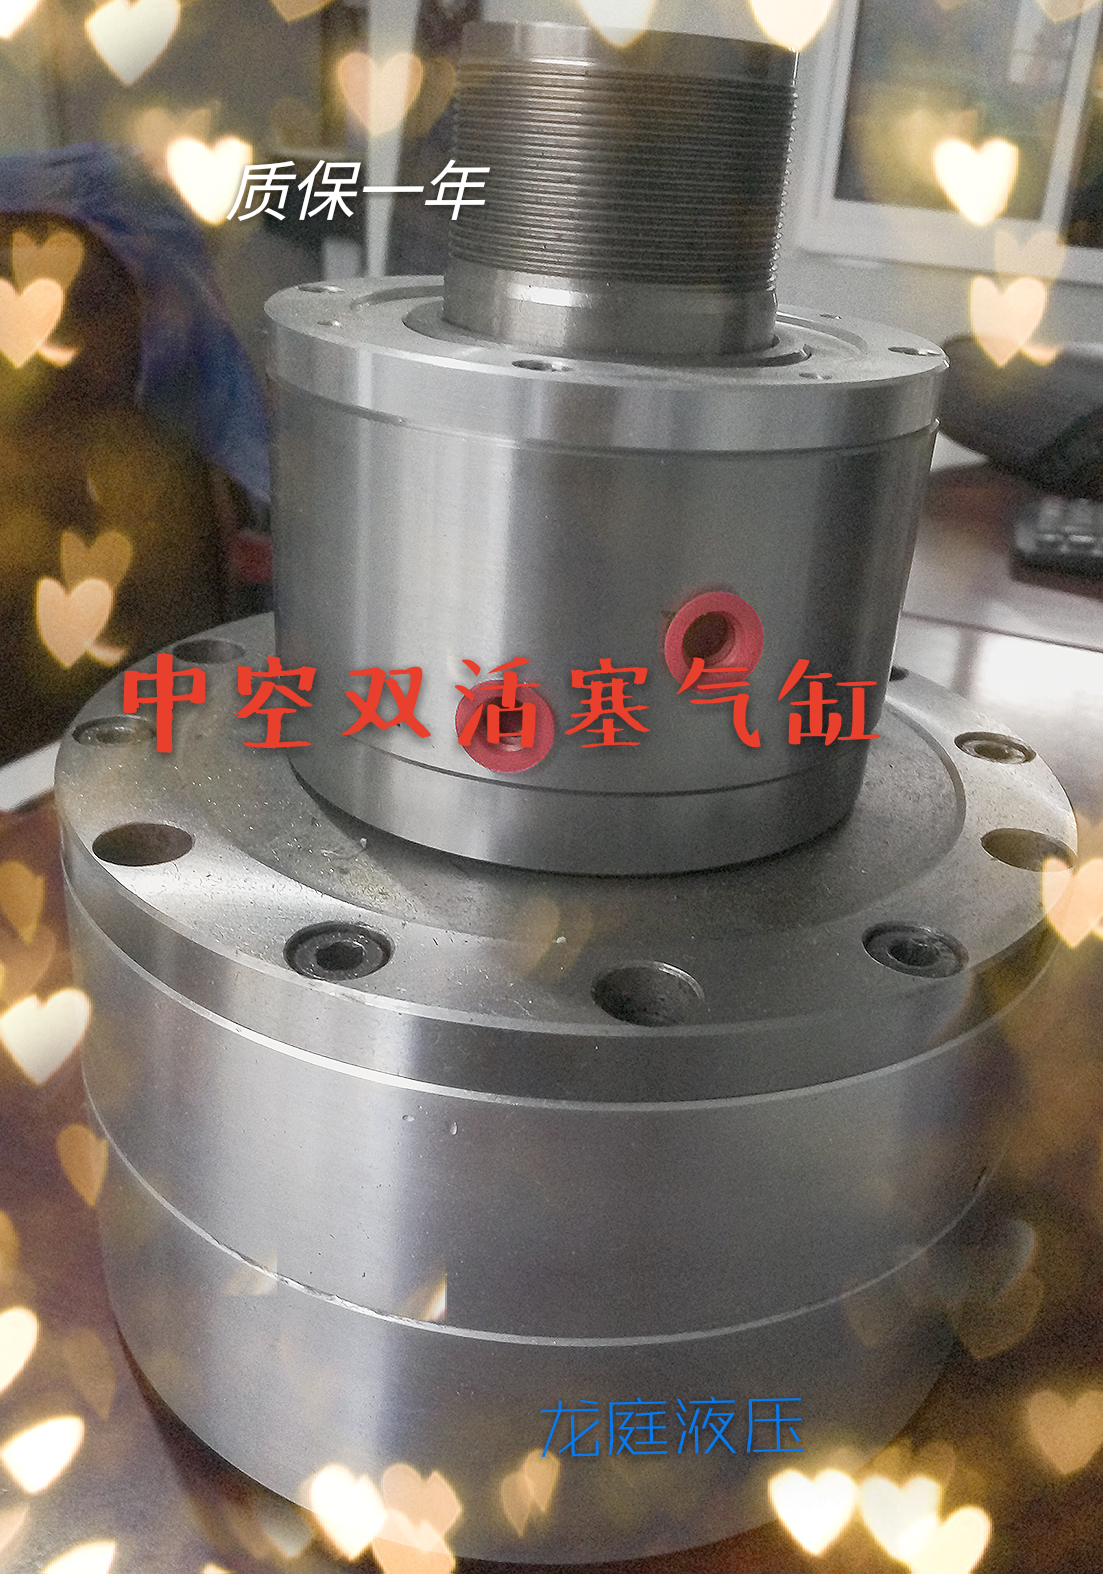 The hollow cylinder for double piston hydraulic chuck is guaranteed by the factory for one year